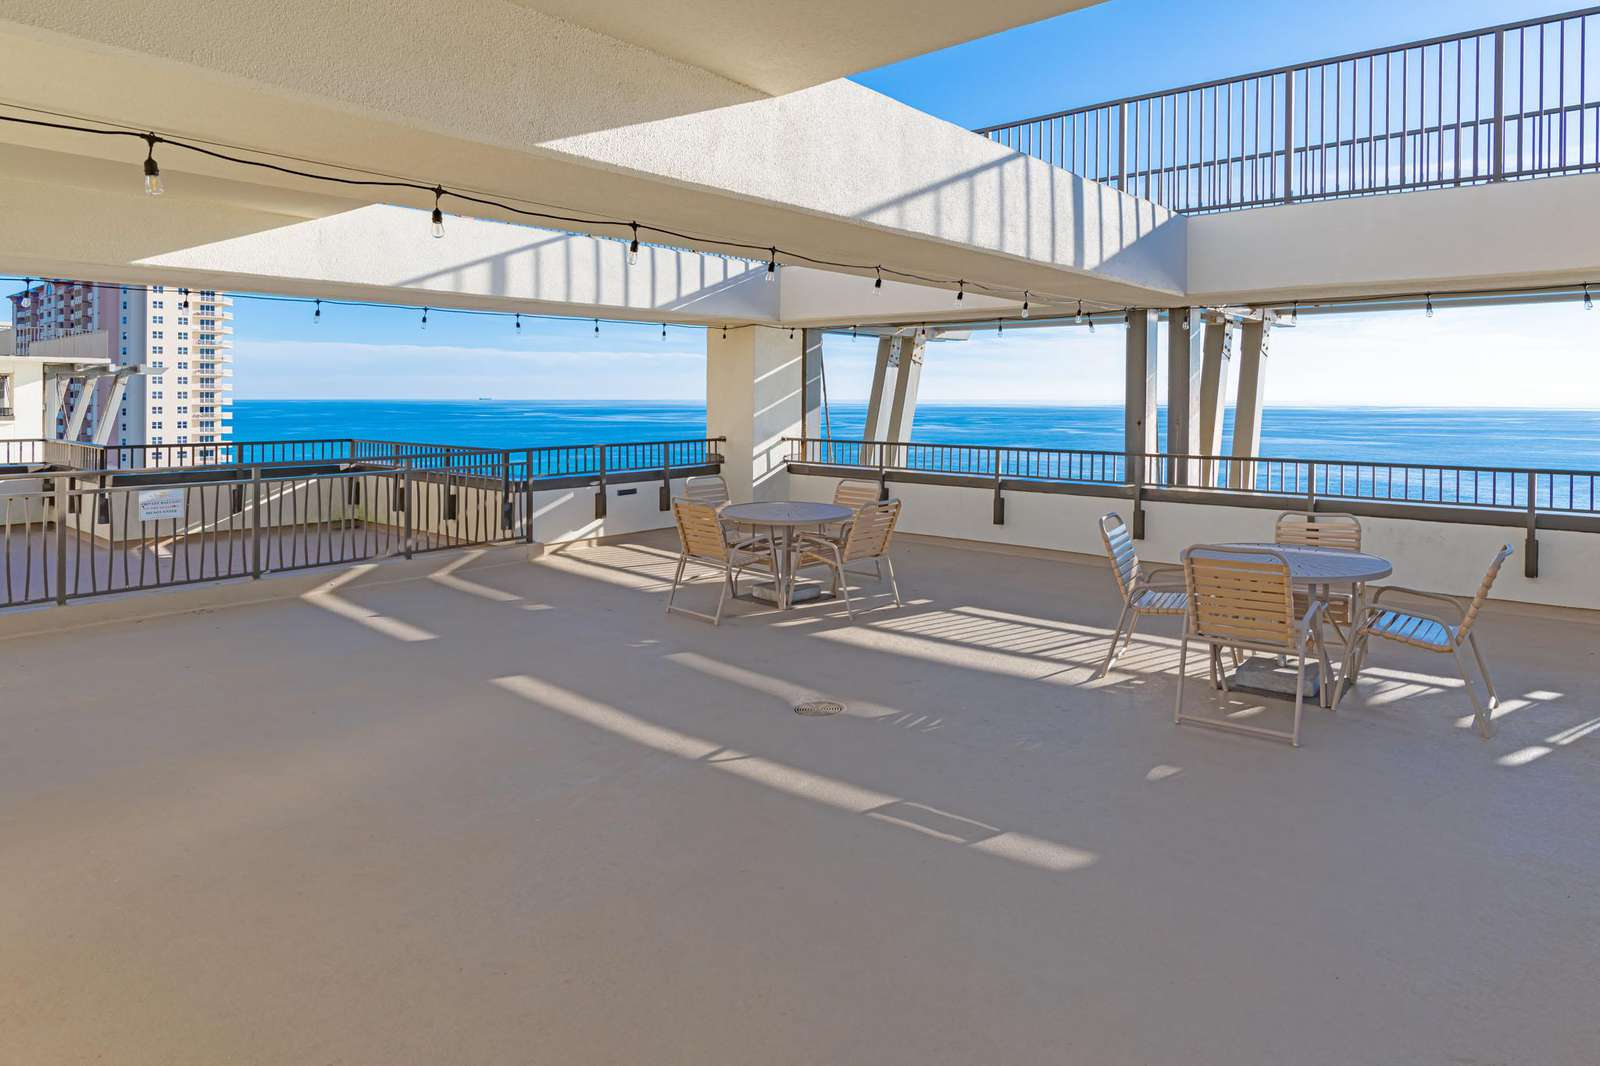 The sun deck offers grilling and views!